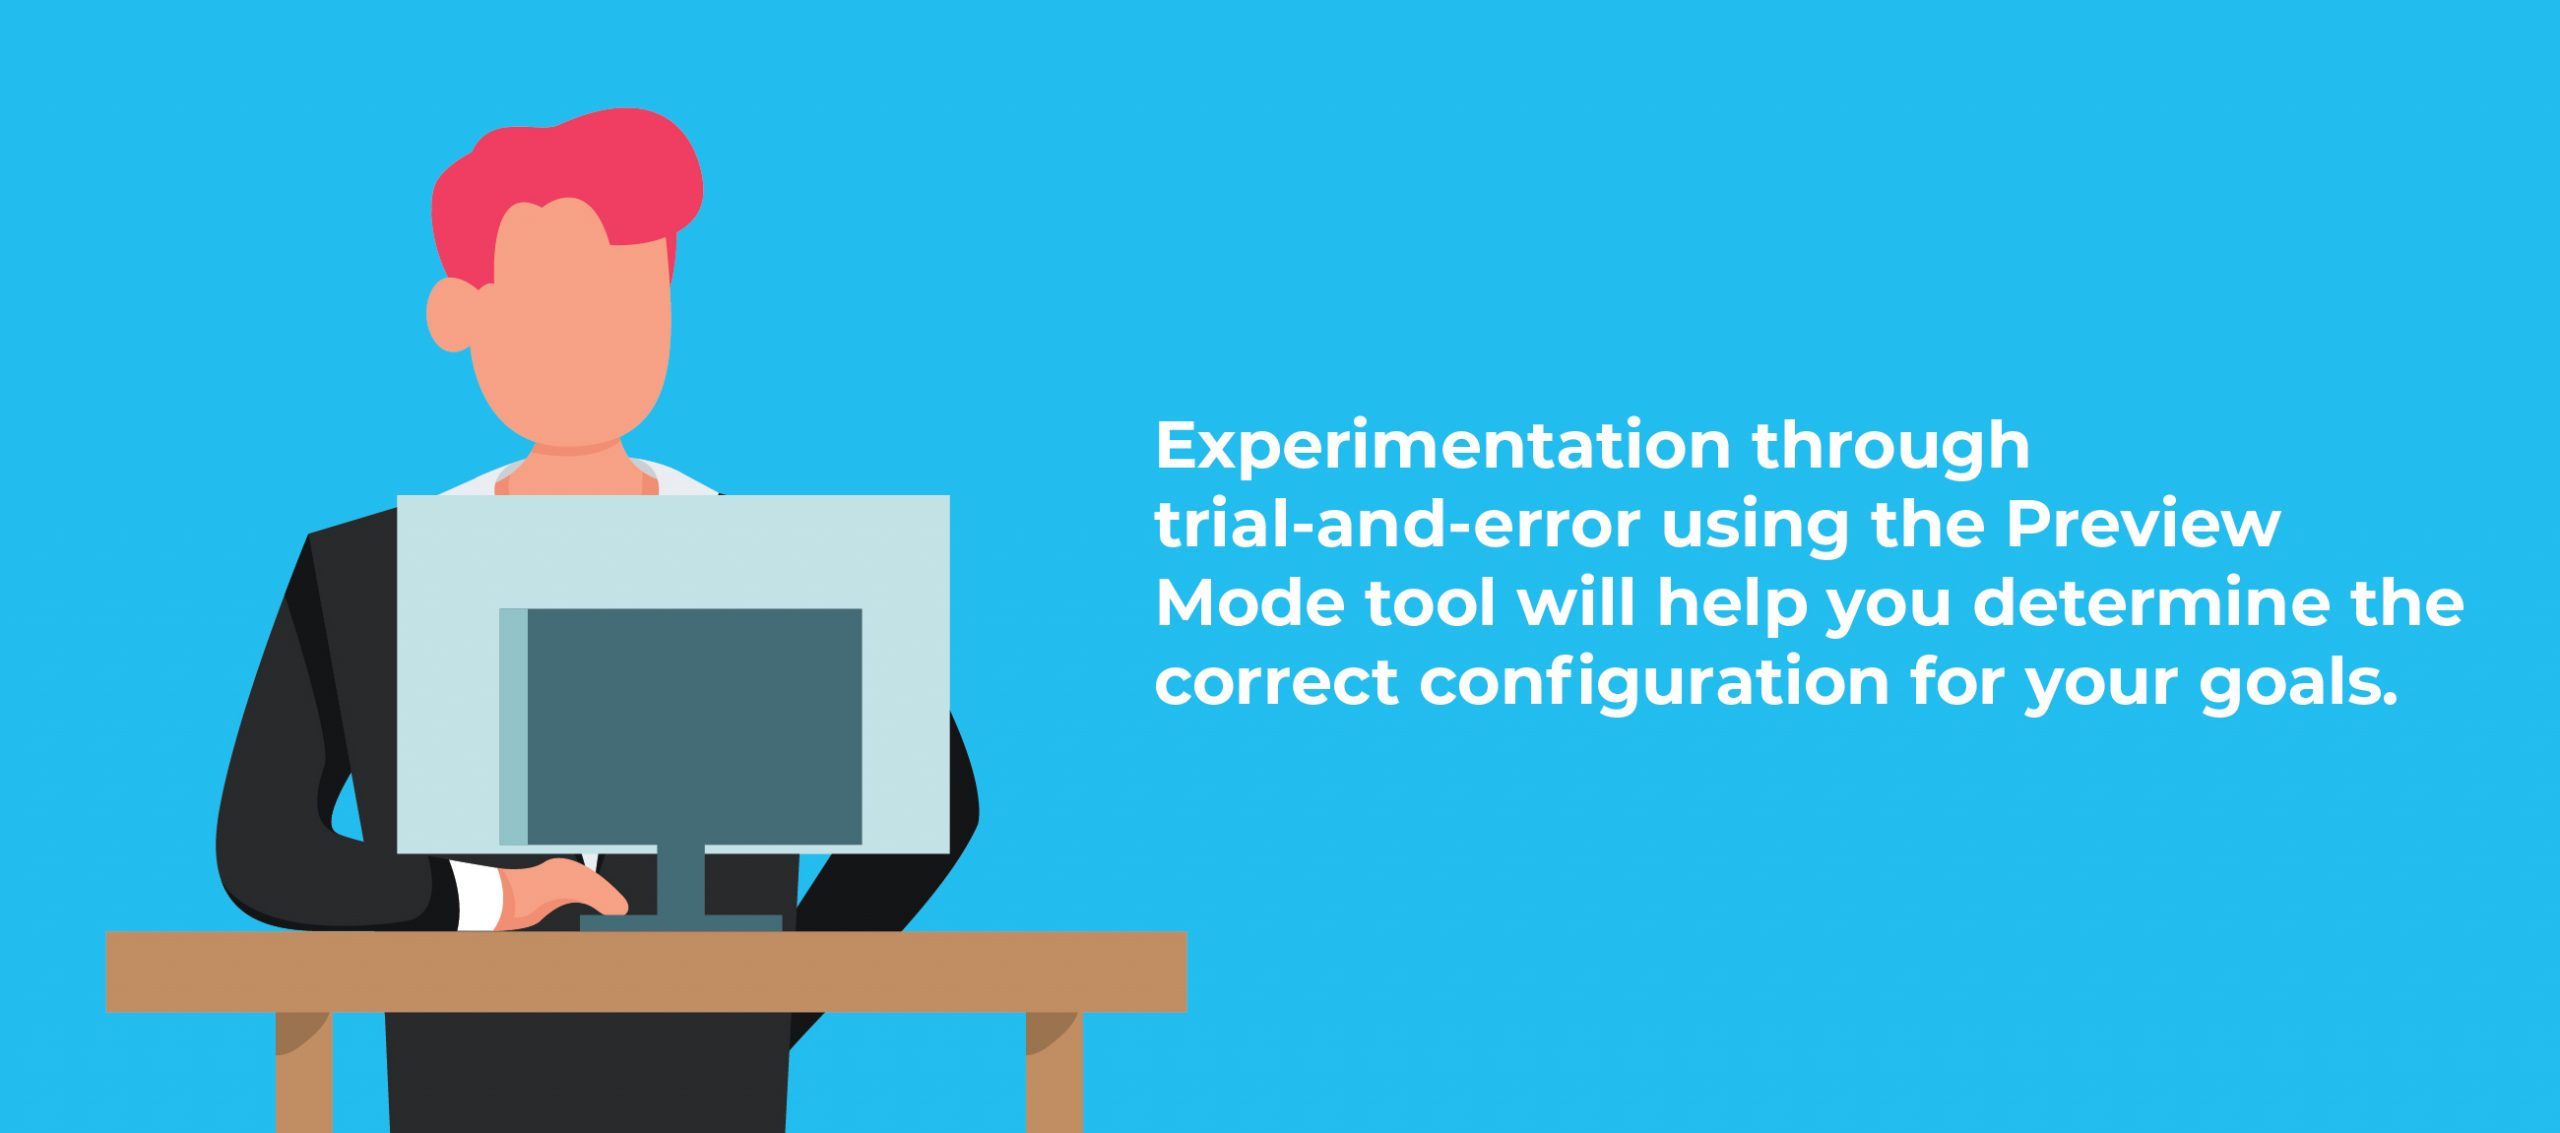 Experimentation through trial-and-error using the Preview Mode tool will help you determine the correct configuration for your goals.